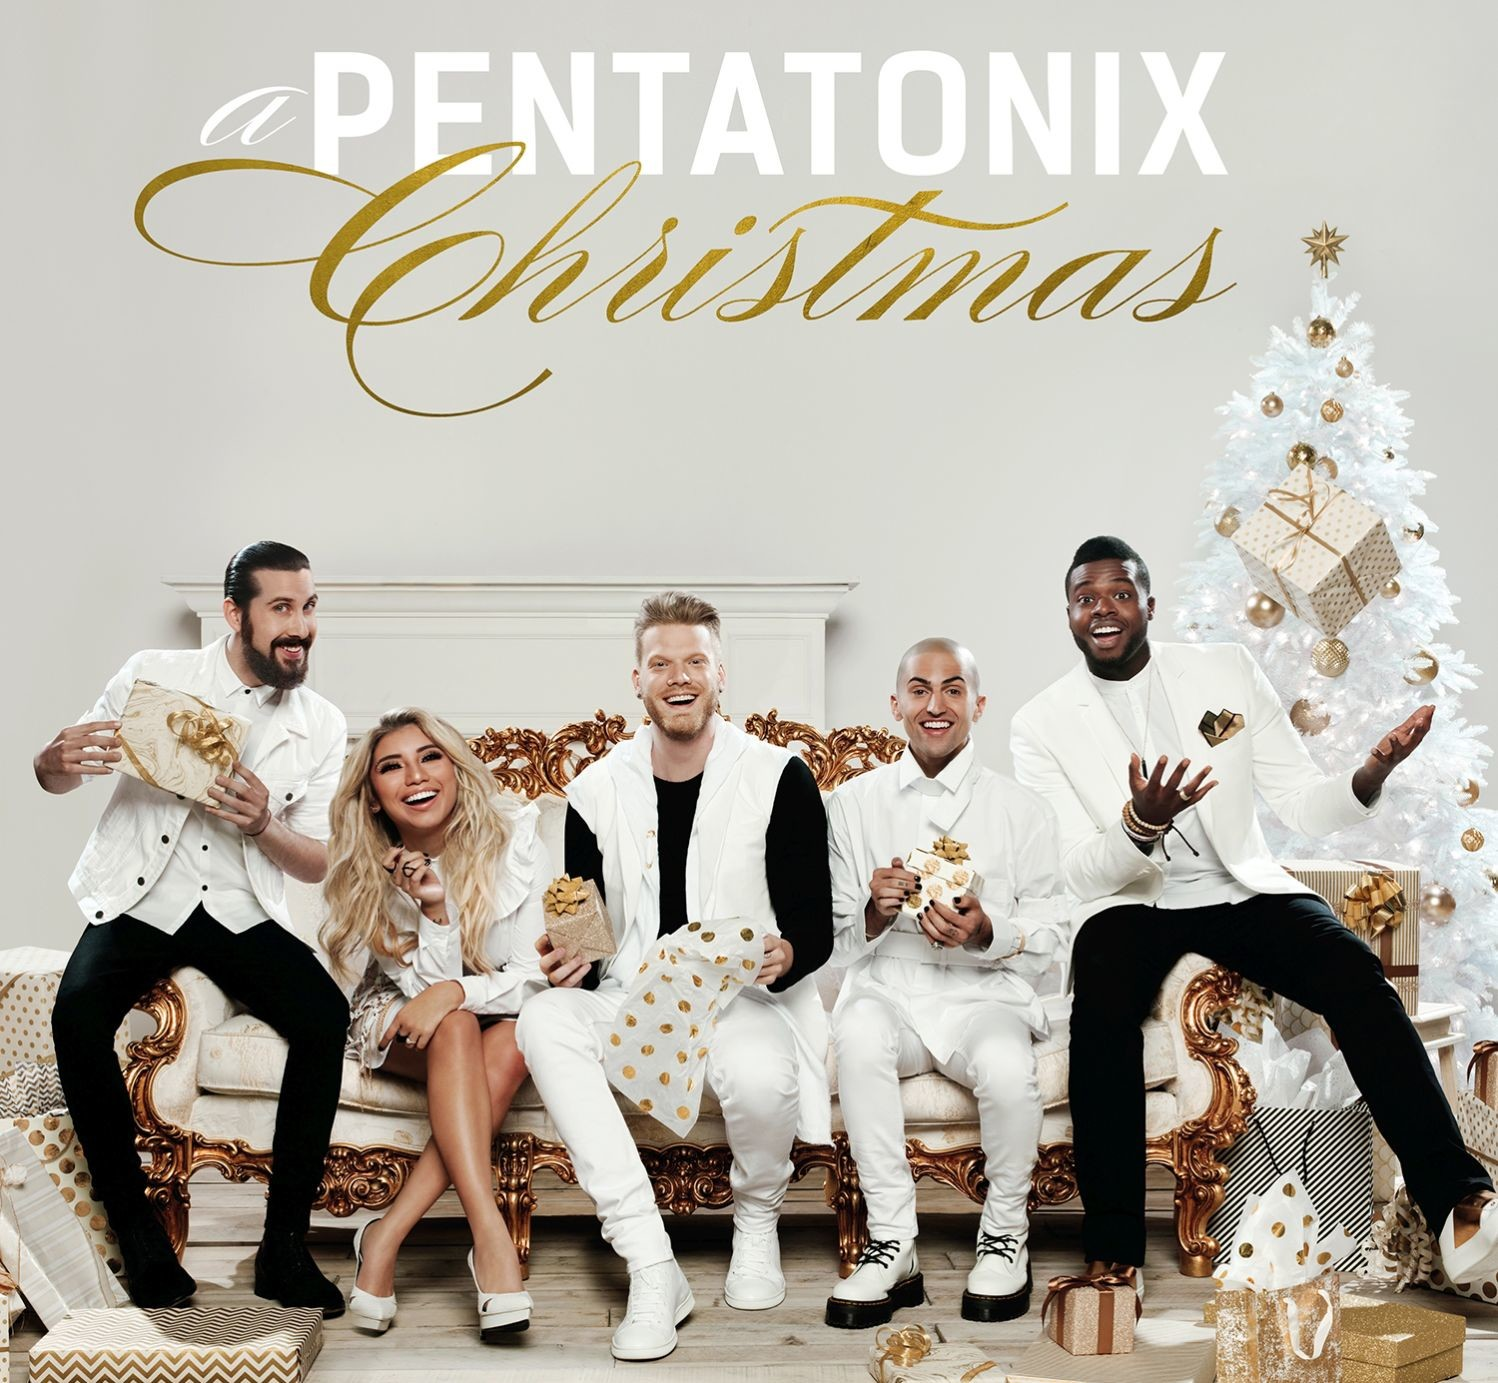 A Pentatonix Christmas\' delivers holiday harmony | Hill Country News